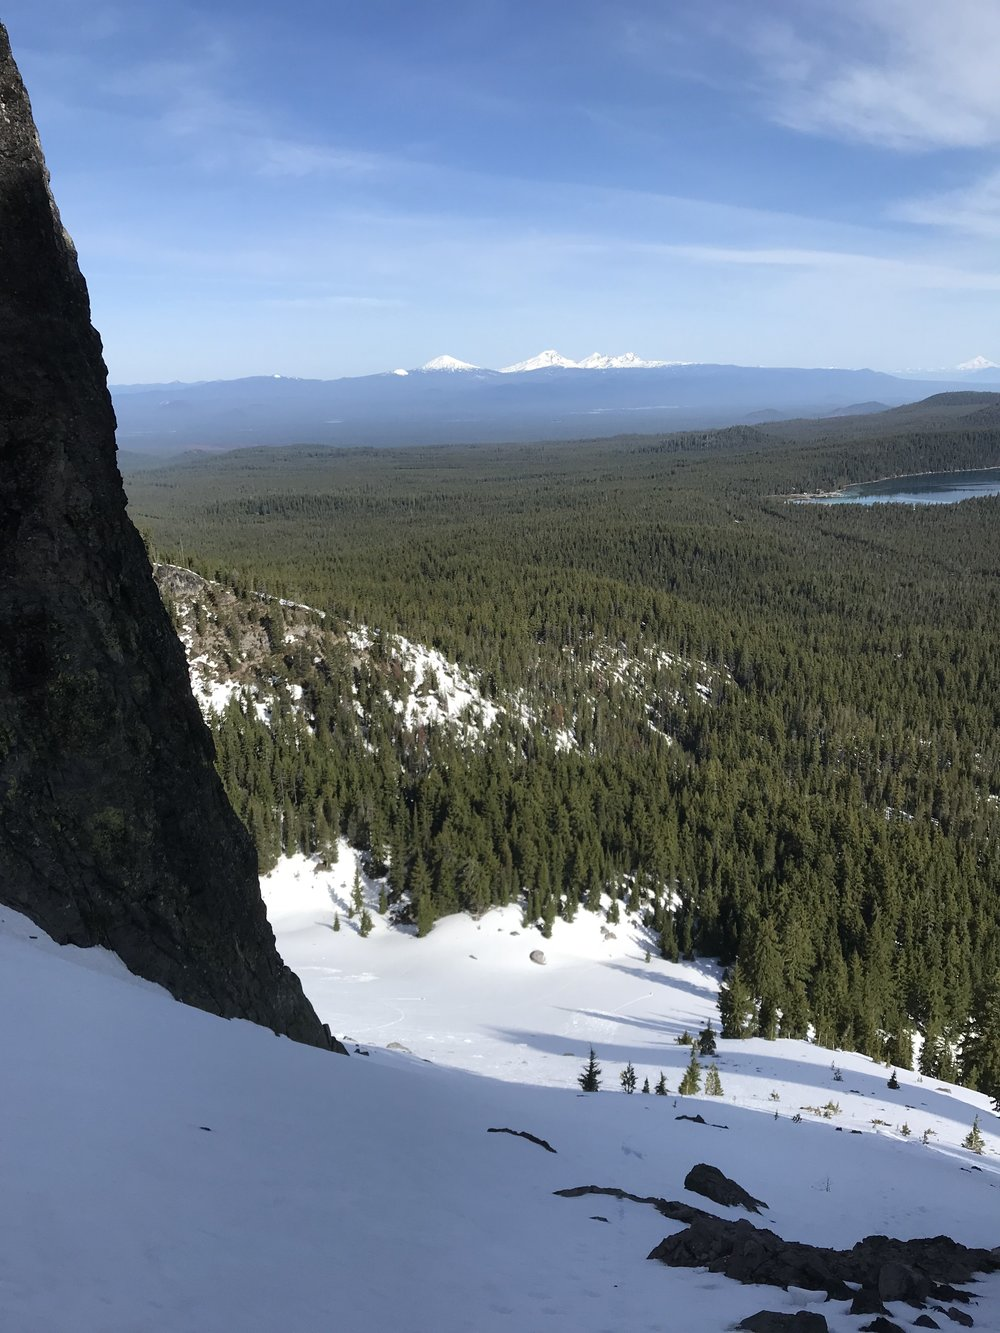 Near the top - Paulina Lake, Mt. Bachelor, Three Sisters, Mt. Jefferson in the distance